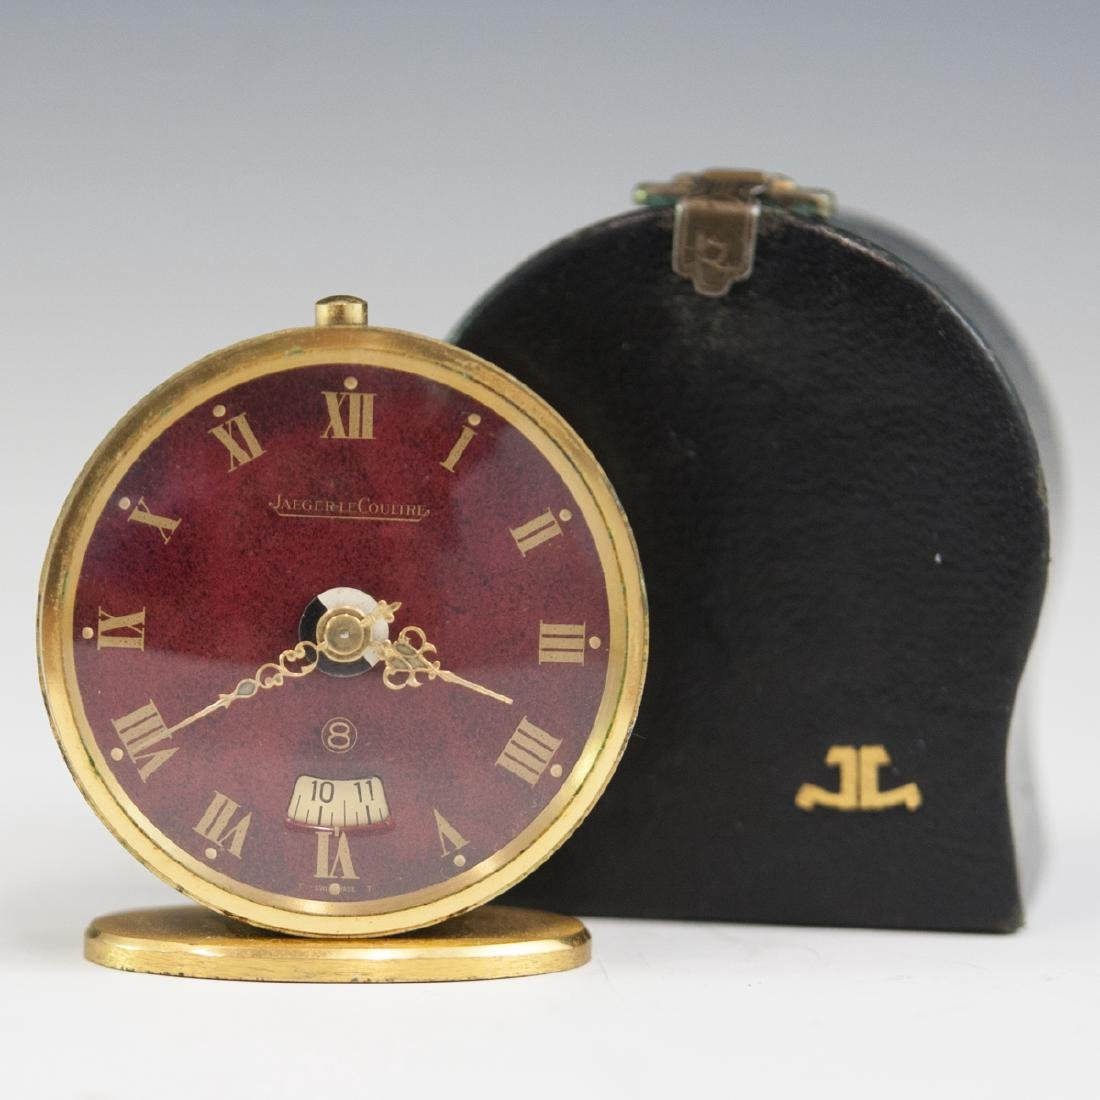 Jaeger Lecoultre Gilt Metal Travel Clock